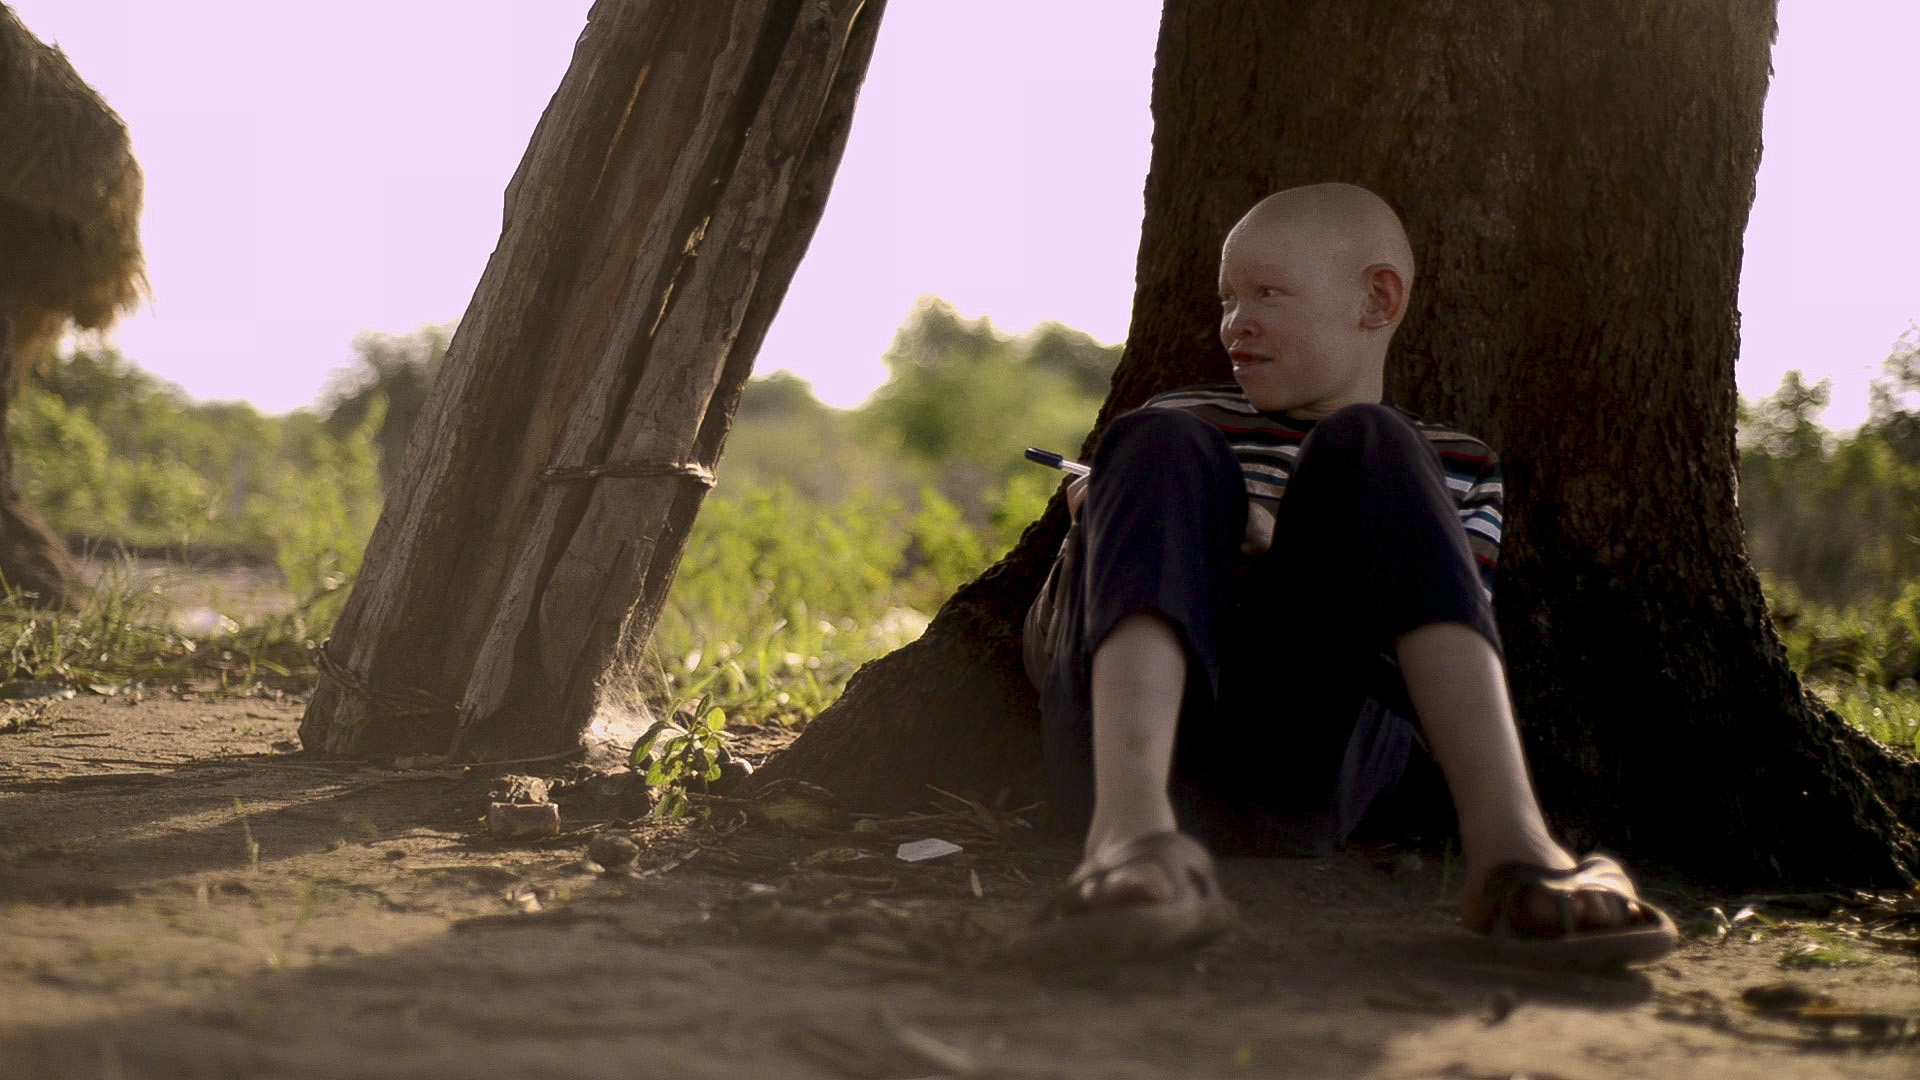 THE BOY FROM GEITA, Documentary on Albinism in Africa, Sets October Release Date